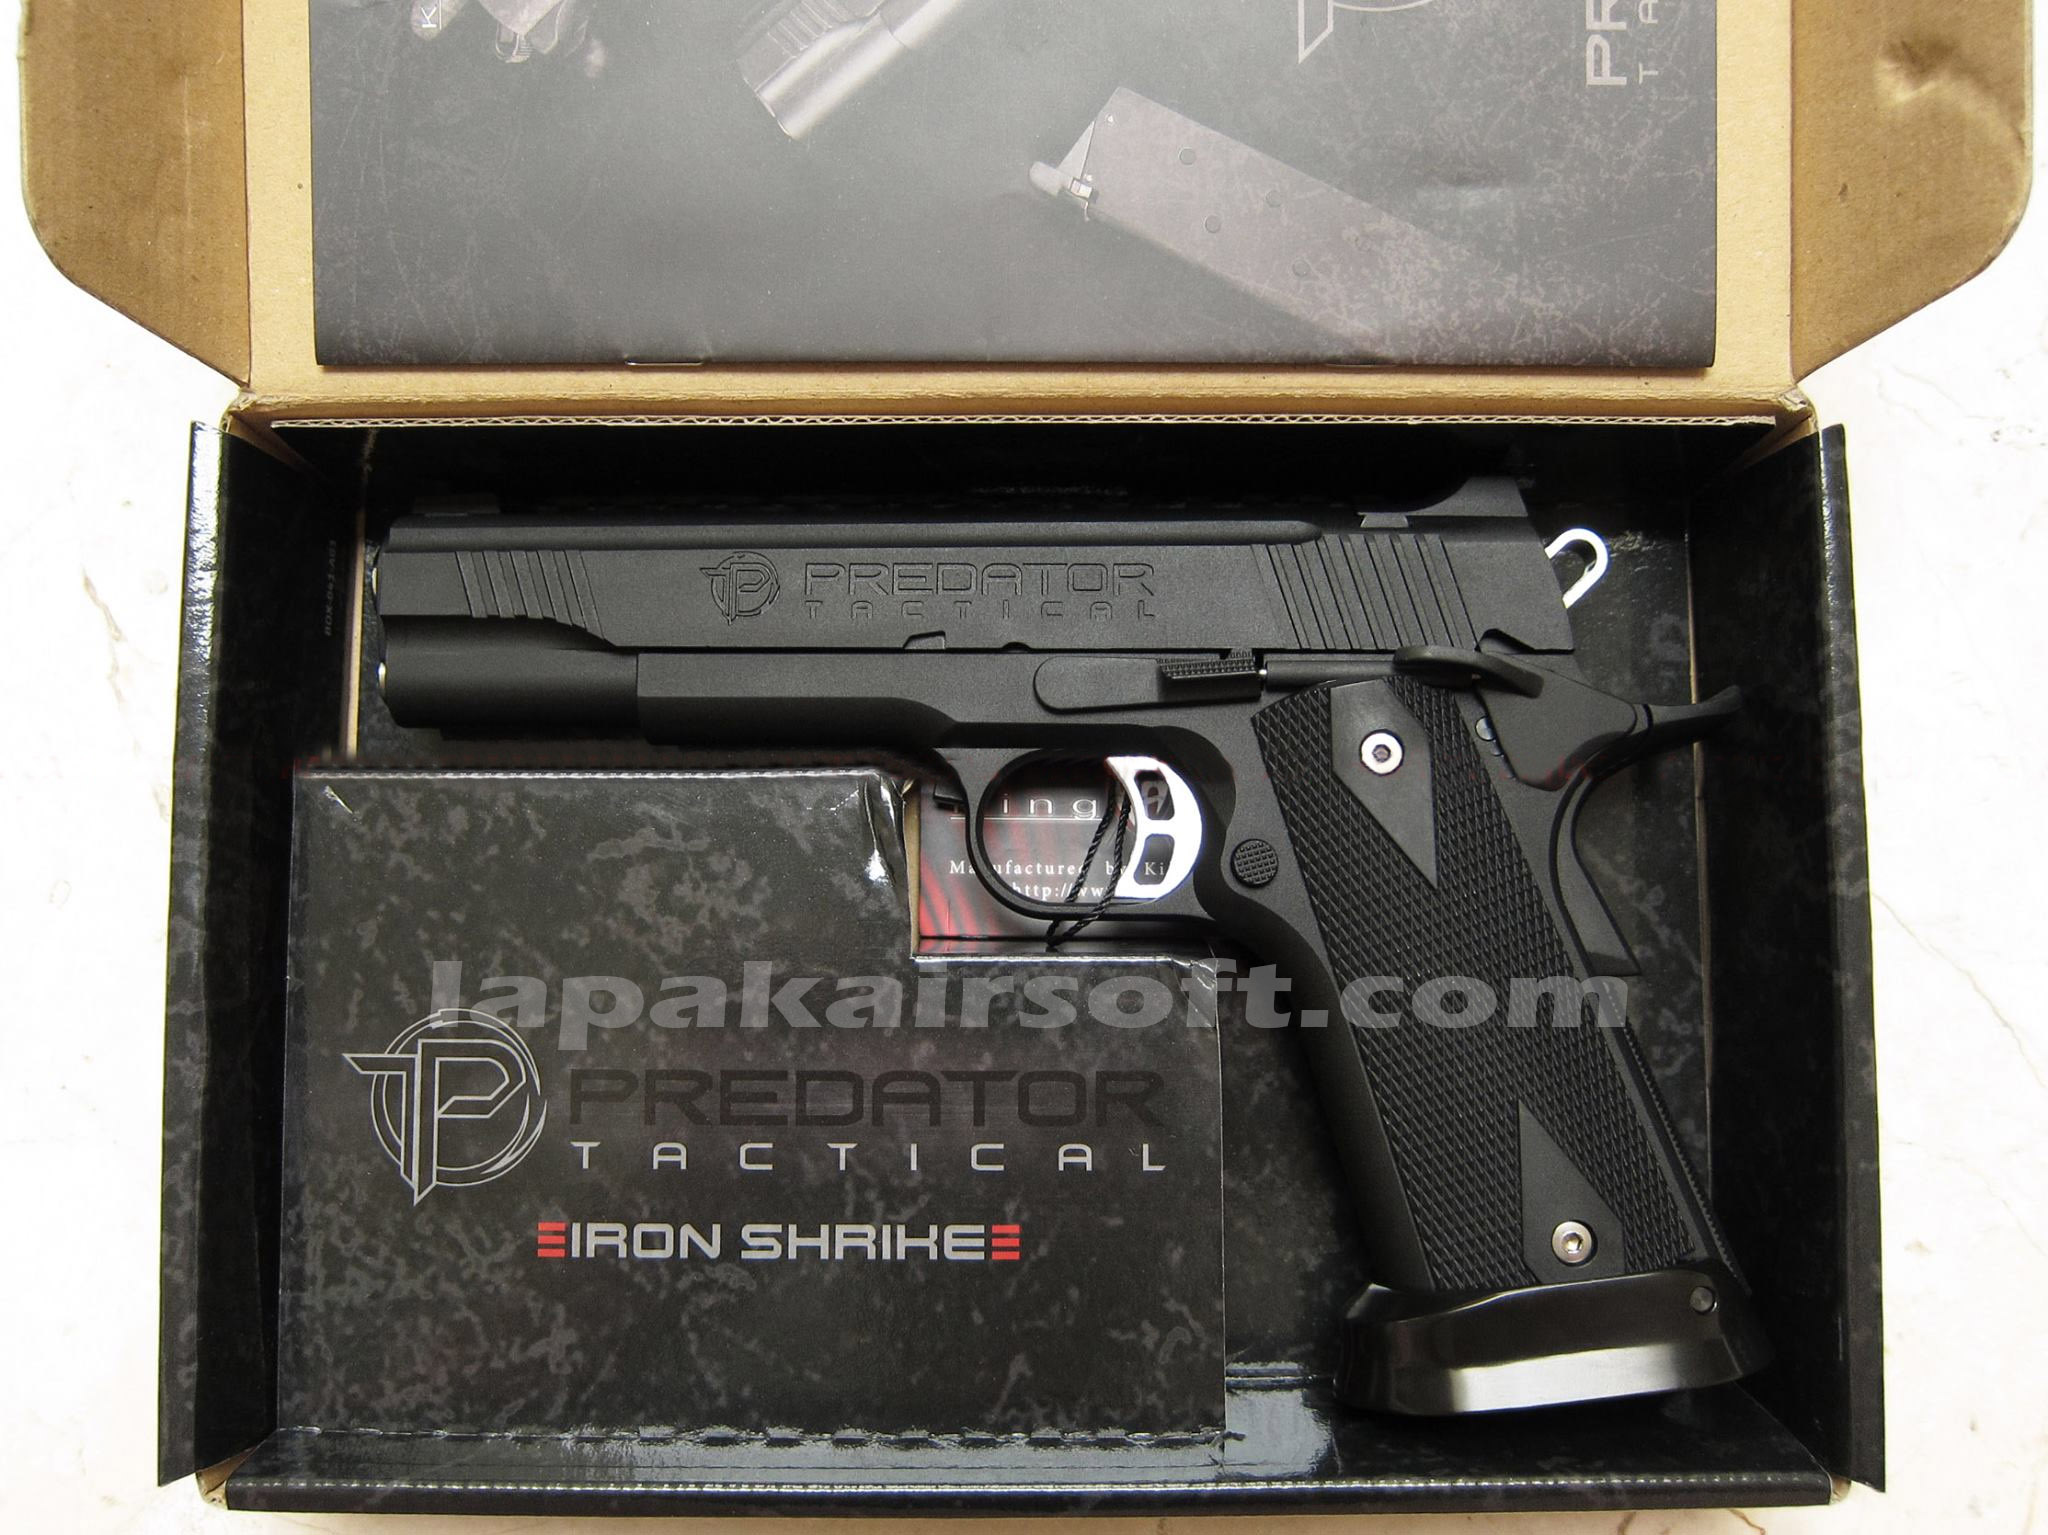 M1911 Jual Airsoft Gun Senapan Angin Pistol Replika Rcf Makarov King Arms Predator Tactical Iron Shrike Gas Blow Back Licensed